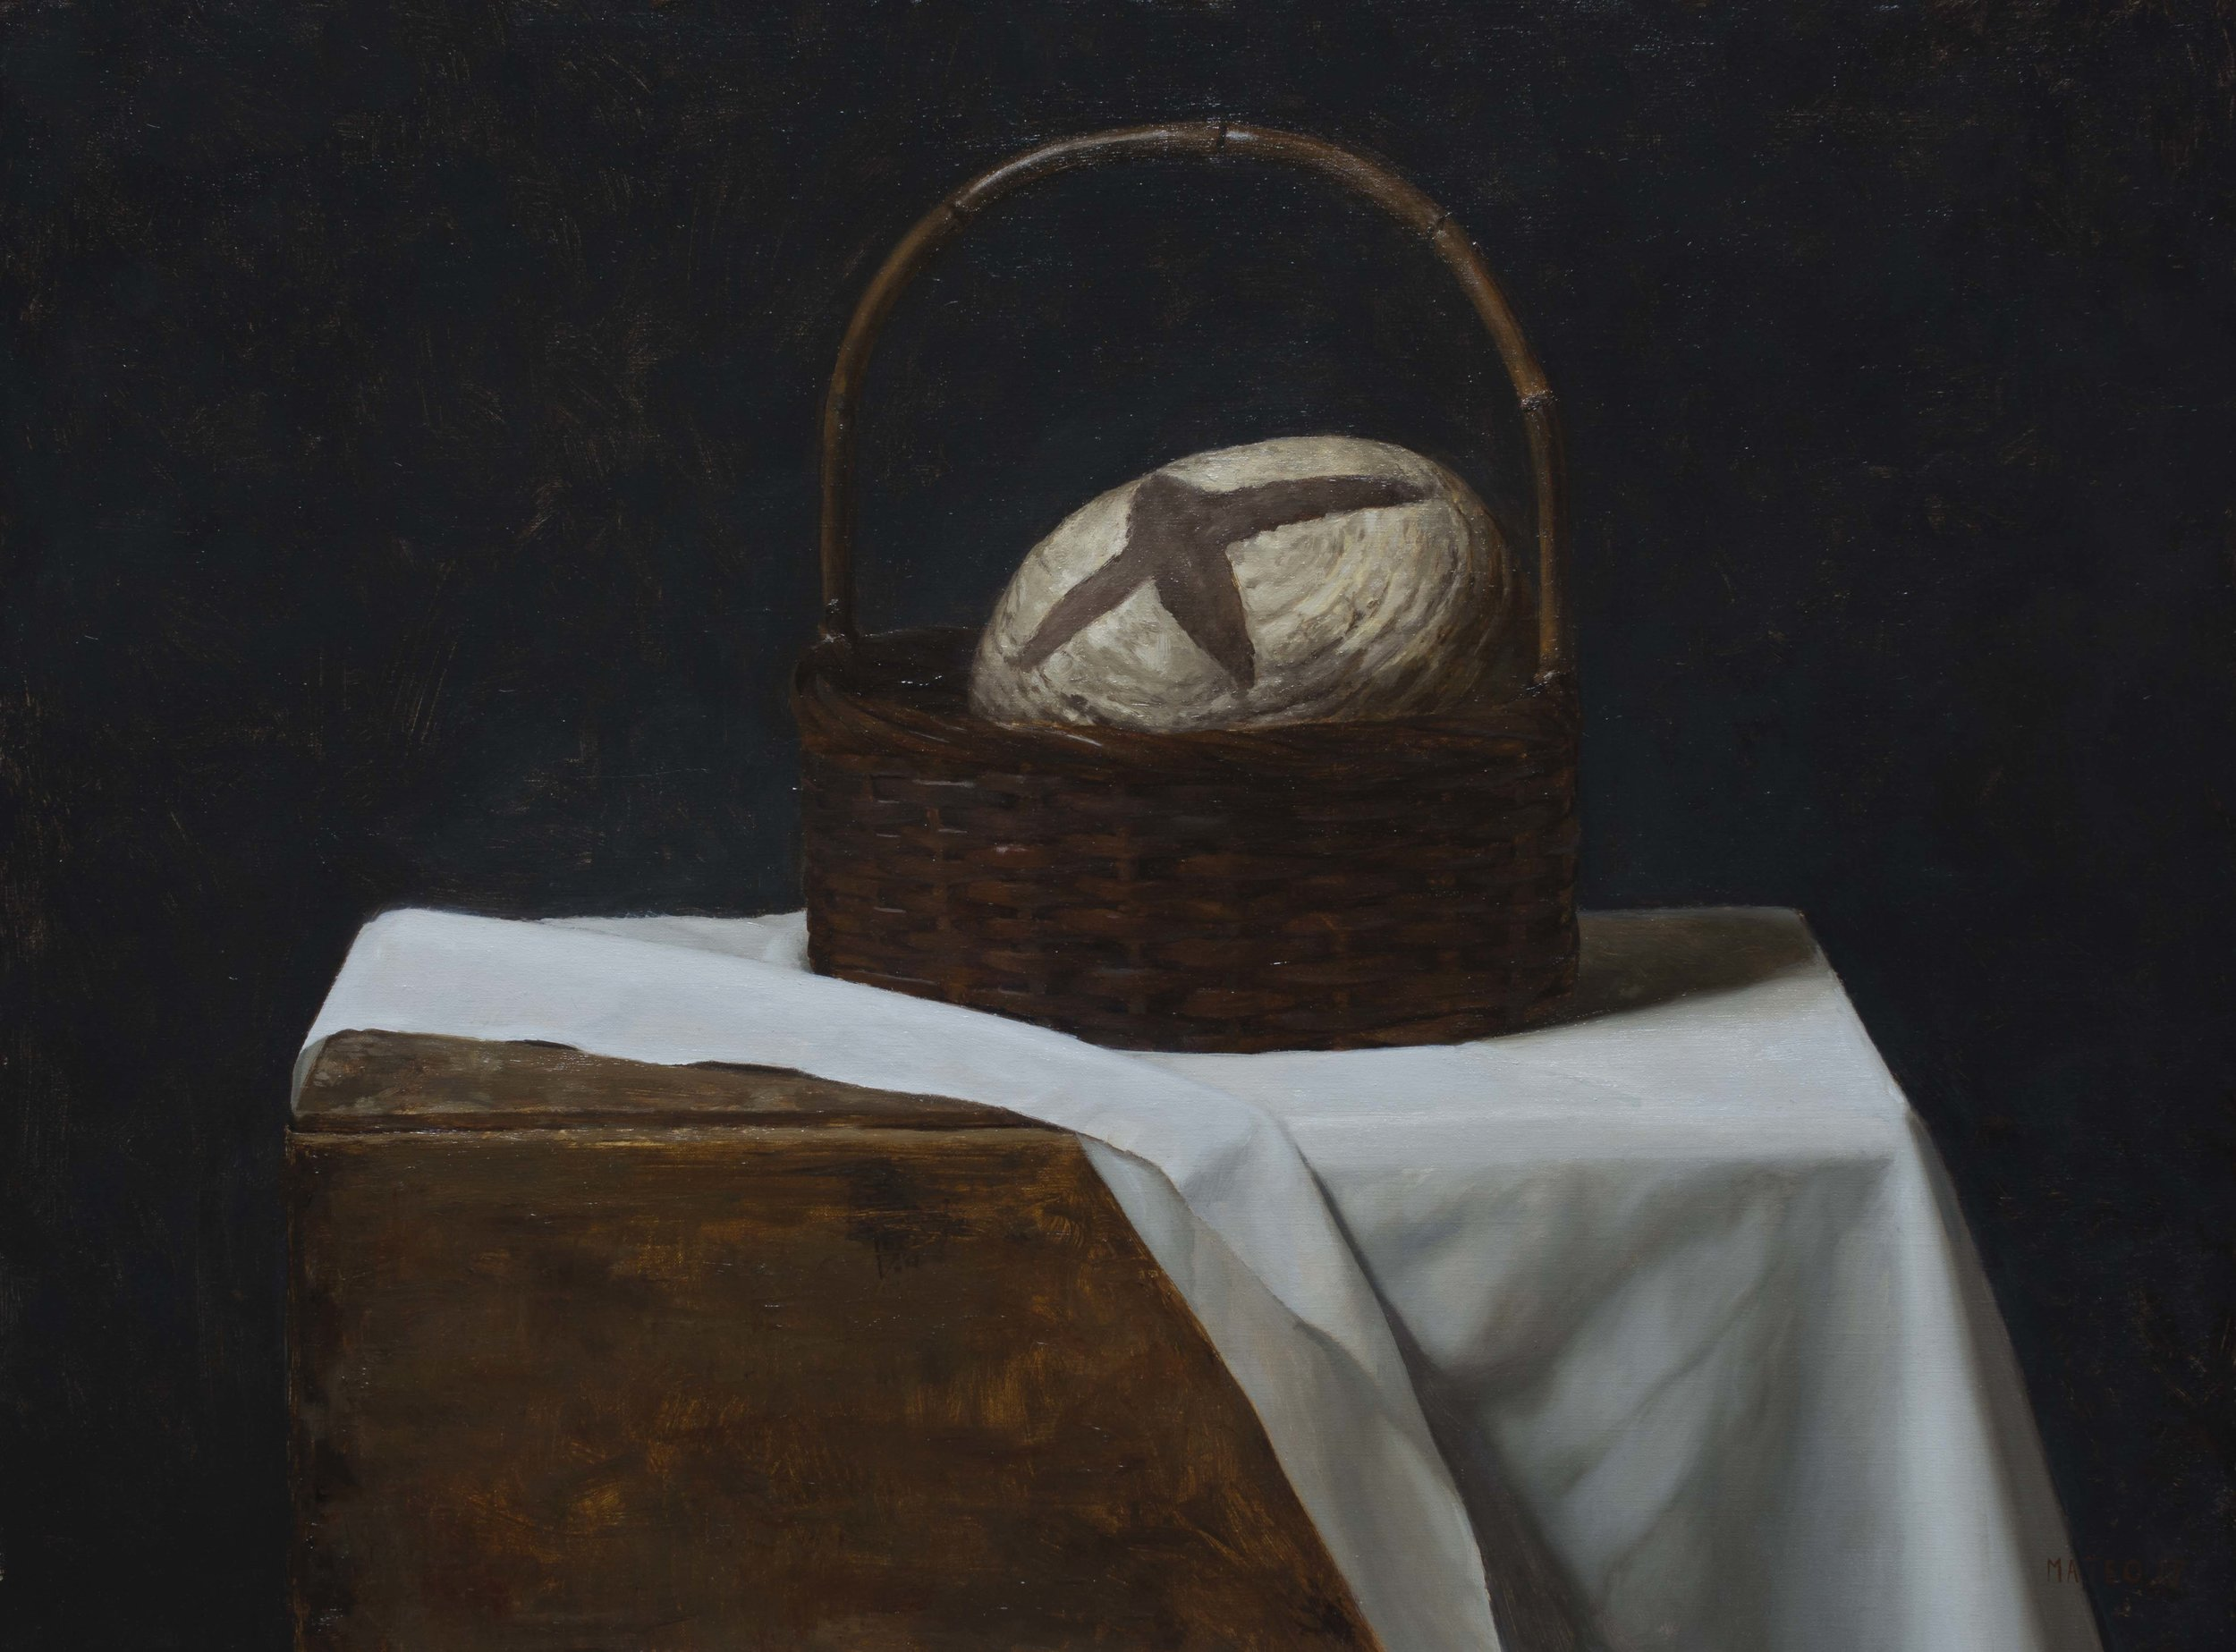 Basket of Bread. Oil on Canvas. 18x24